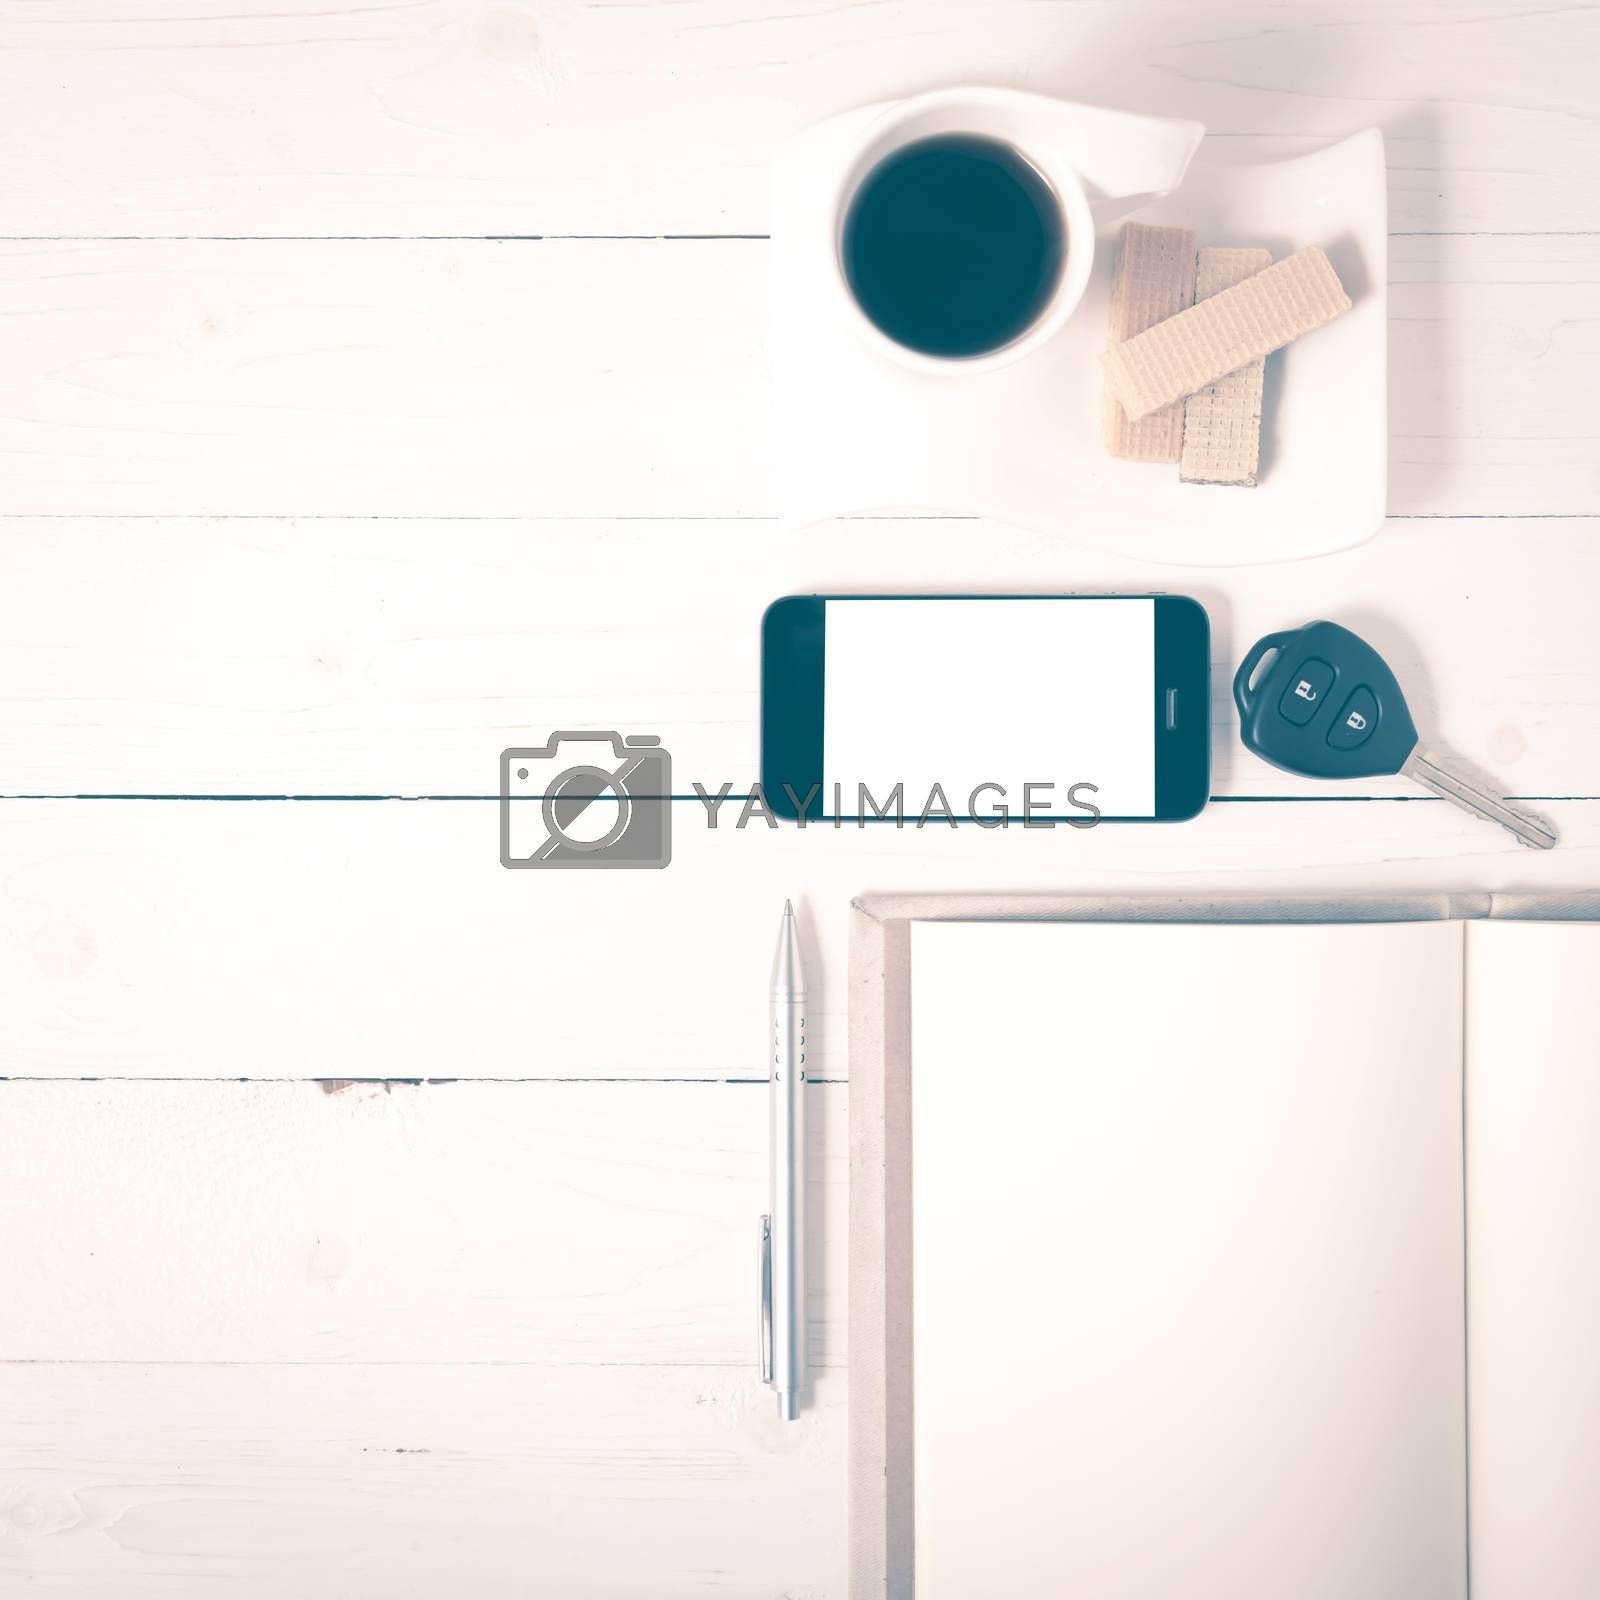 coffee cup with wafer,phone,car key,notebook on white wood background vintage style